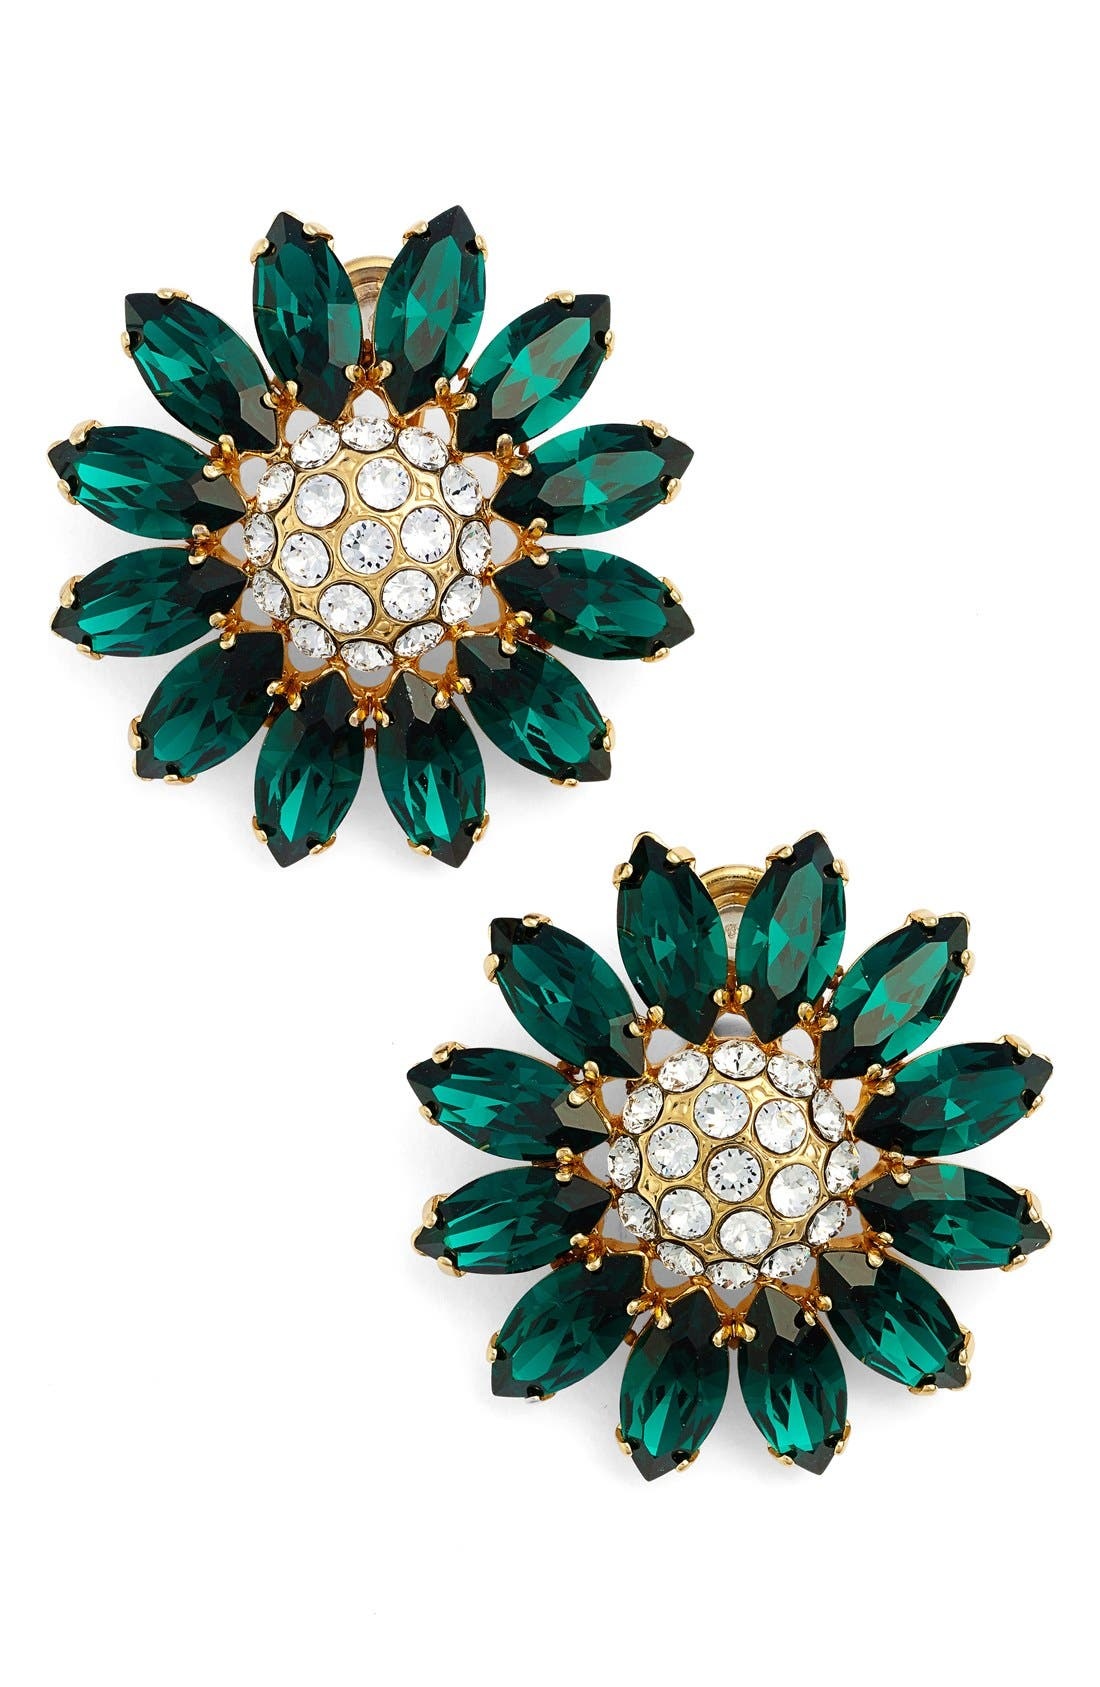 Main Image - Miu Miu 'Rebels' Crystal Floral Stud Earrings